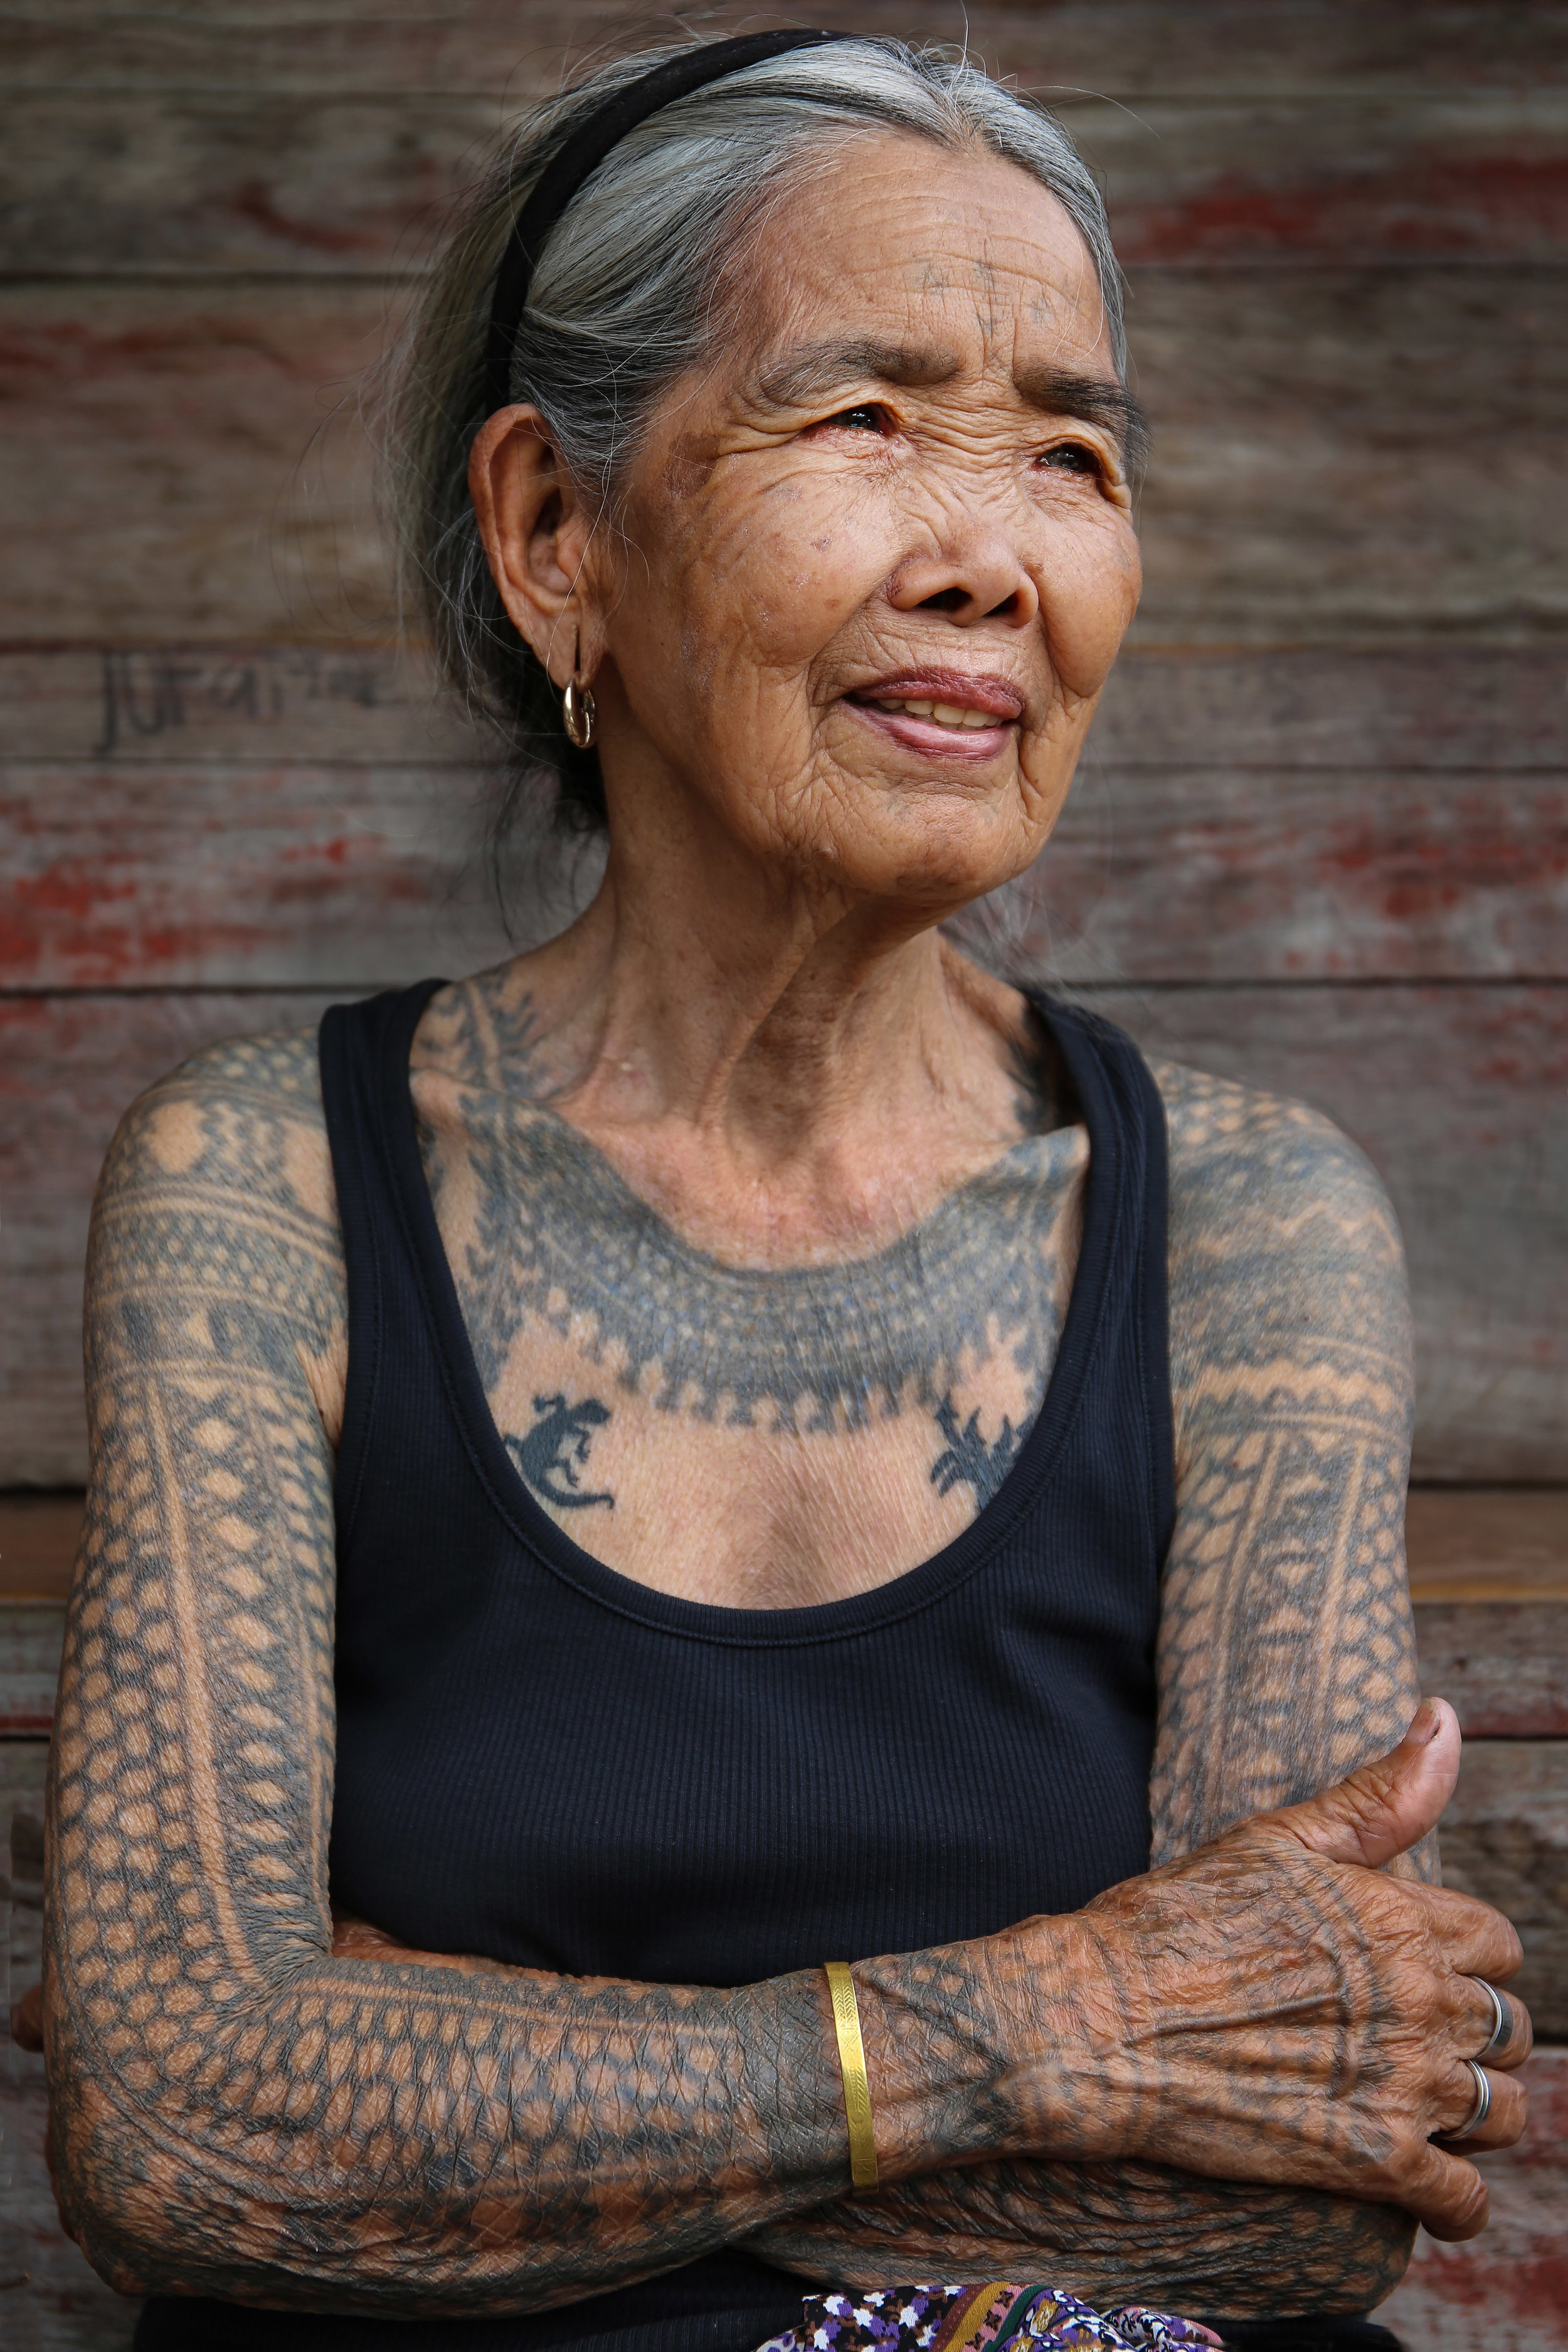 LYNZY BILLING  www.lynzybilling.co.uk  |  @lynzybilling   This pioneering 101-year-old tribal tattooist is leading Indigenous women to economic independence in the Philippines. Fang-od Oggay is known worldwide as a living legend and the last tribal tattoo artist to hold the title of Mambabatok—the name given to traditional tattooists by the Kalinga ethnic group for thousands of years. For over eight decades, Oggay has been single-handedly keeping the traditions of the Butbut tribe alive through a unique method of hand-tap tattooing.